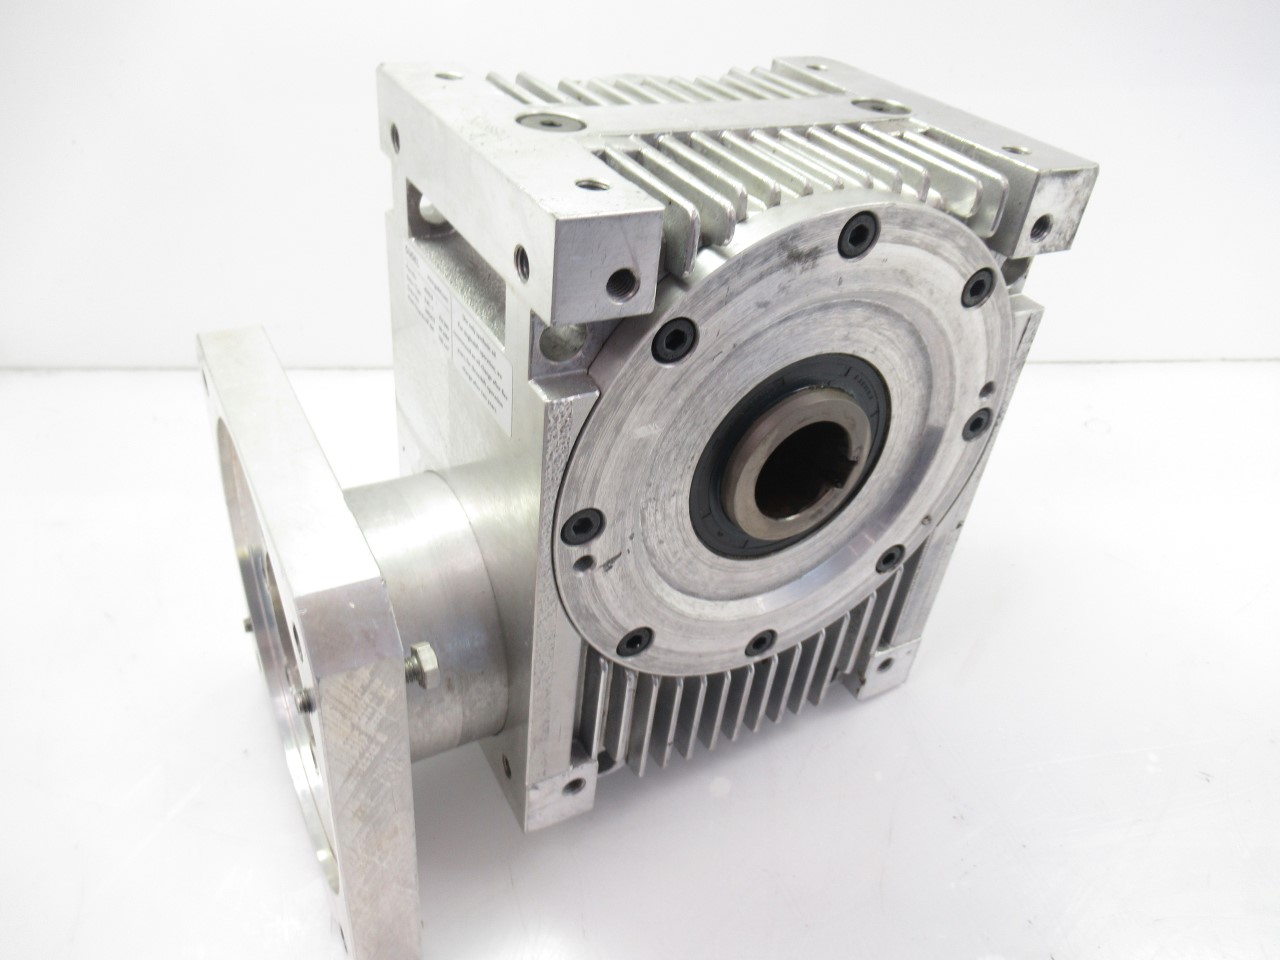 409010 - Gudel AE 090/L Worm Gear Right Angle Gearbox Ratio 8 60:i Input